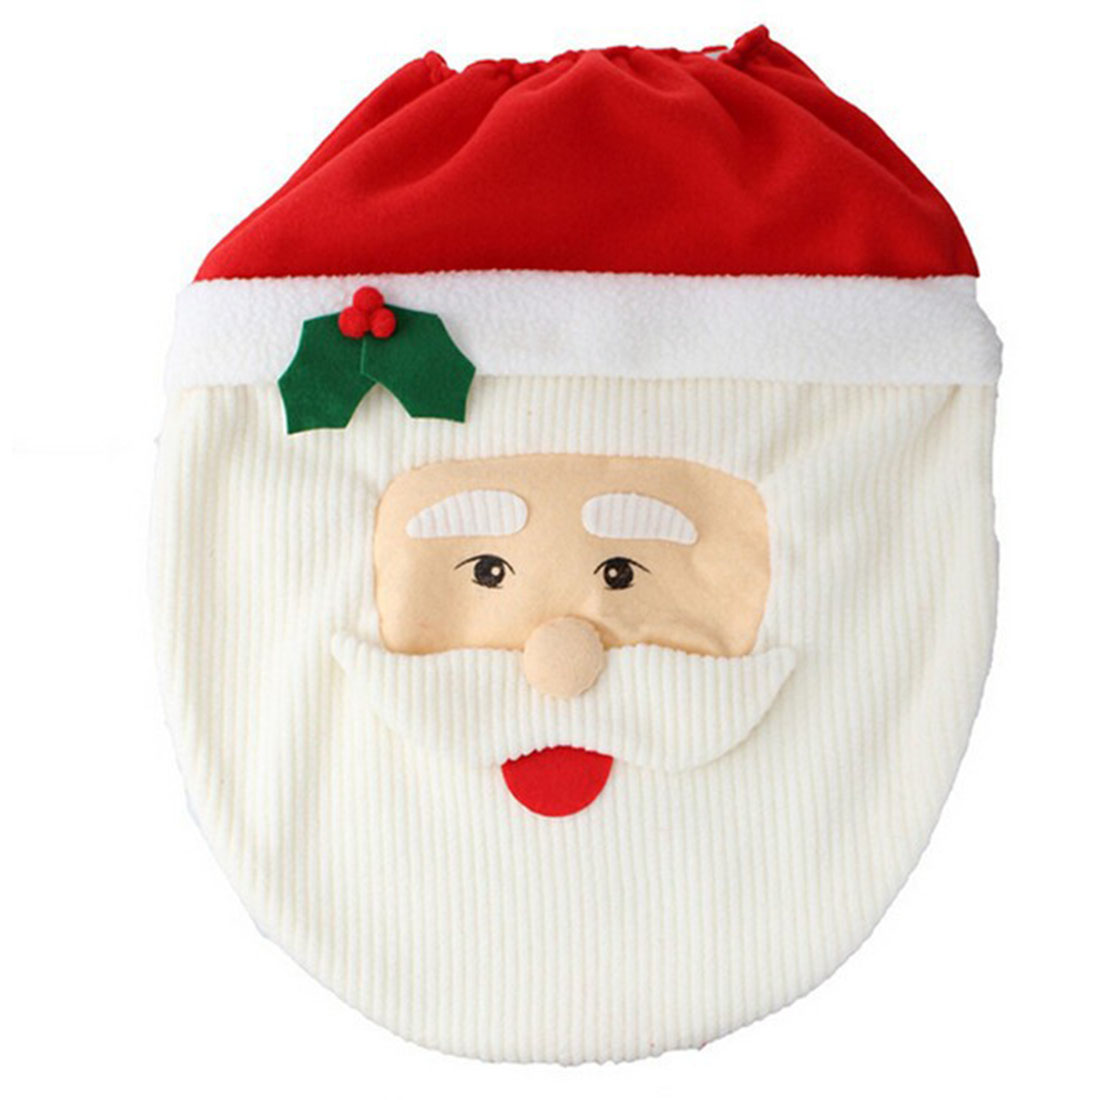 3Pc Set Christmas Santa Claus Bathroom Toilet Seats Cover